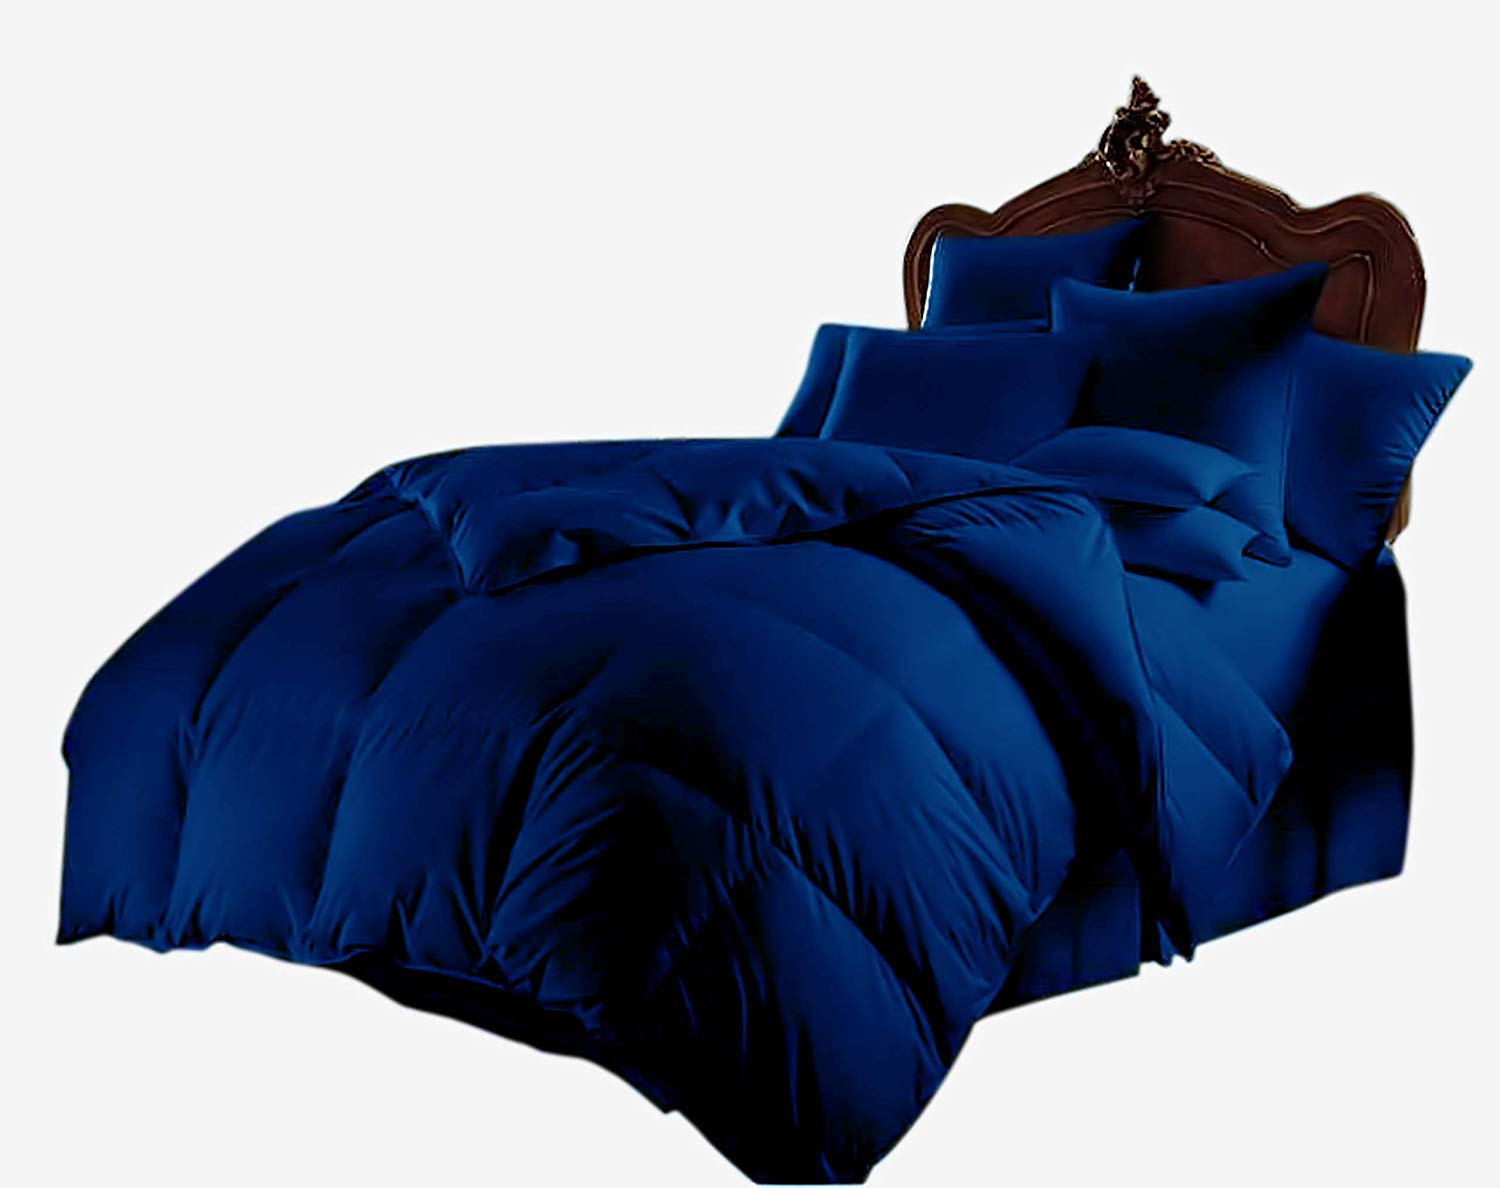 All Season Luxurious 800 Series,Luxury Goose Down Alternative Comforter, King Size - Quilt 3 Pc Comforter -100% Egyptian Cotton Comforter Set, Hotel Quality 600 GSM, Royale Blue, (90''x102'') by Majestic Bedding